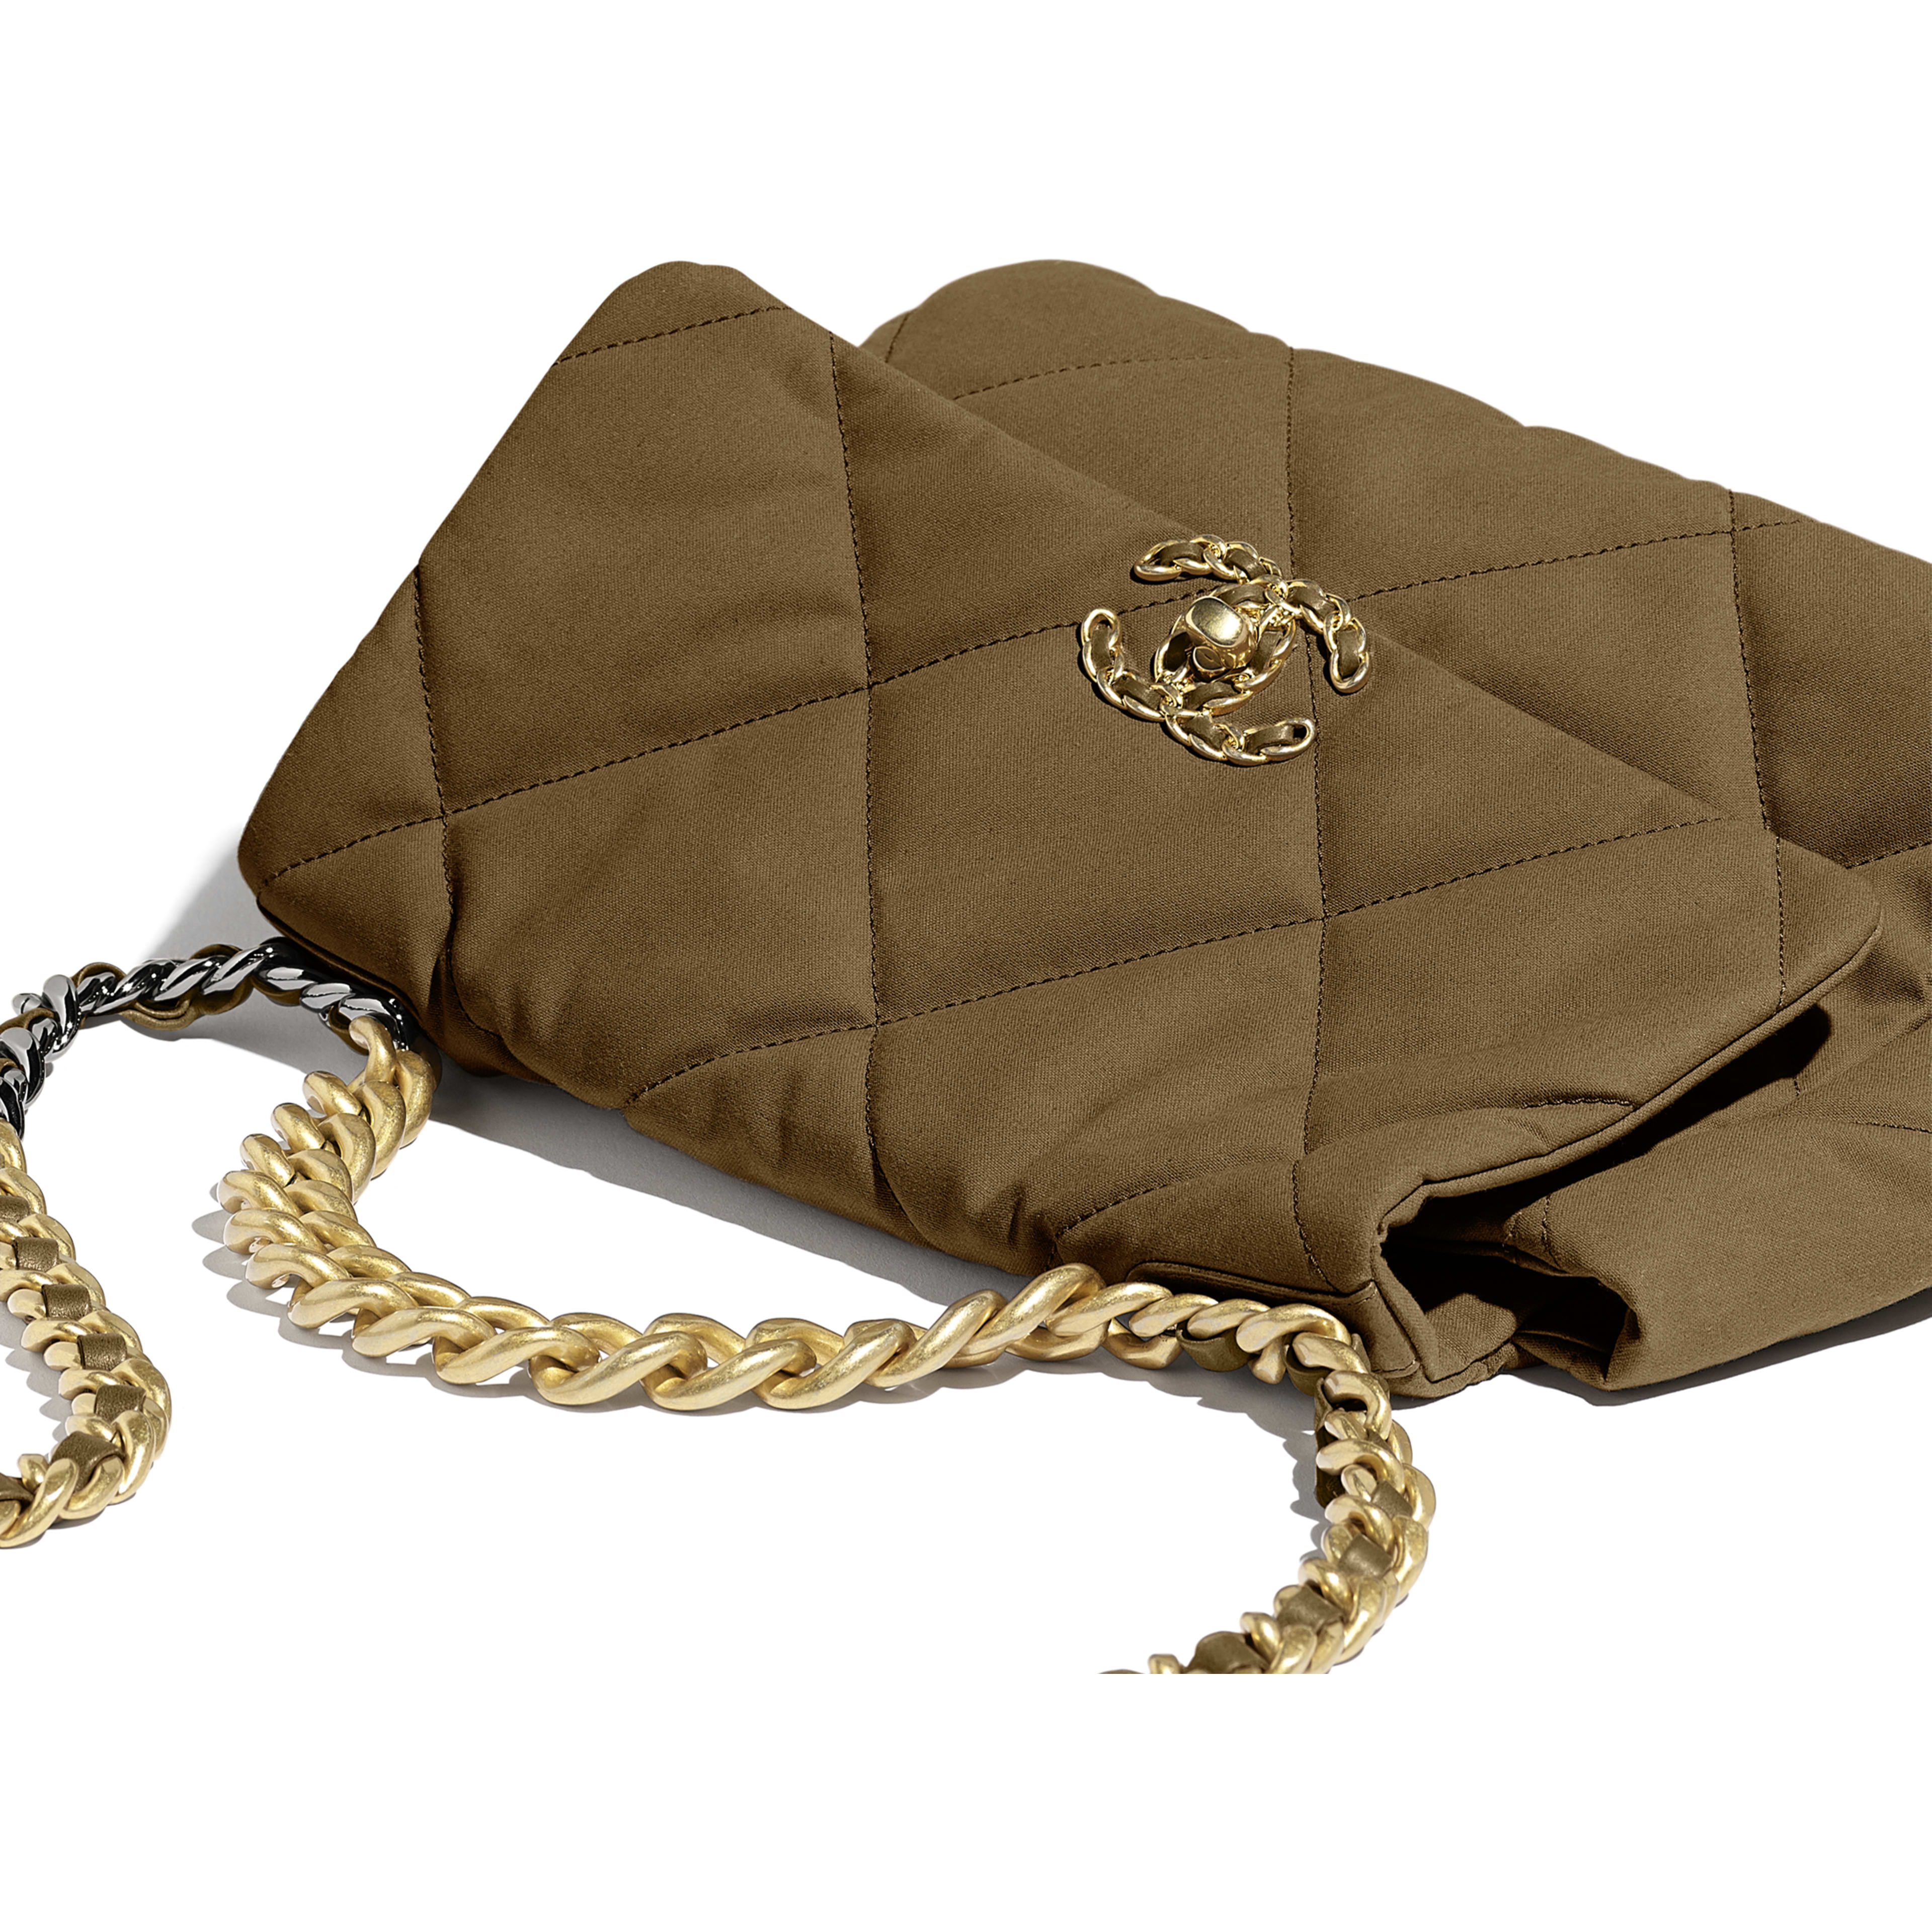 CHANEL 19 Large Flap Bag - Bronze - Cotton Canvas, Calfskin, Gold-Tone, Silver-Tone & Ruthenium-Finish Metal - Extra view - see full sized version